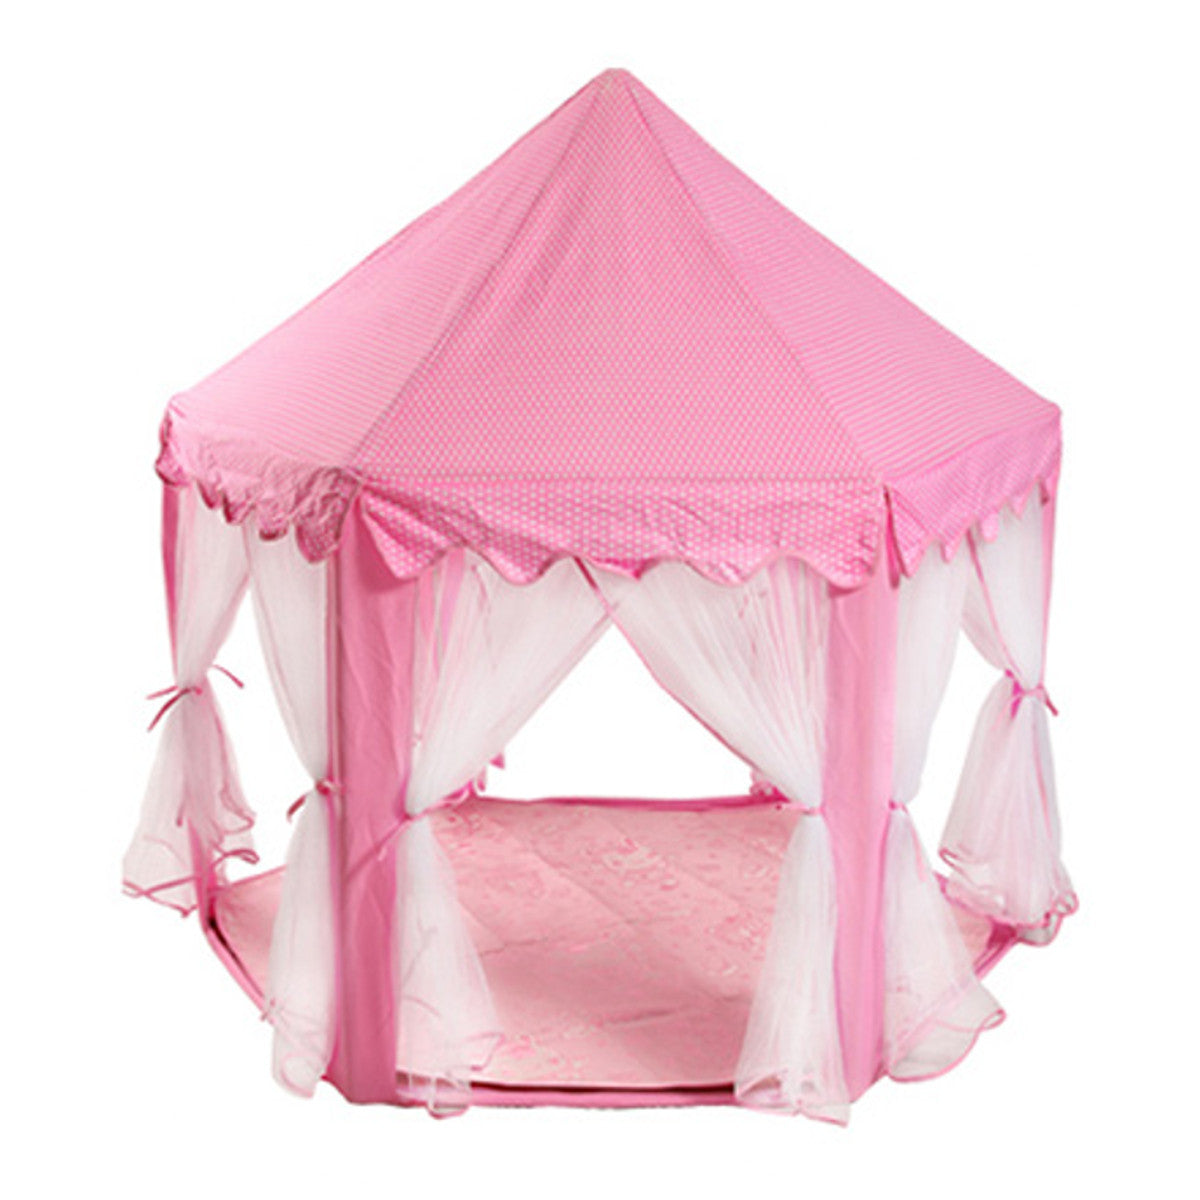 Lovely Girls Pink Portable Princess Castle Cute Playhouse Children Kids Play Tent Outdoor Toys Beach Tent For Children Kids  sc 1 st  Babies R Here & Lovely Girls Pink Portable Princess Castle Cute Playhouse Children ...